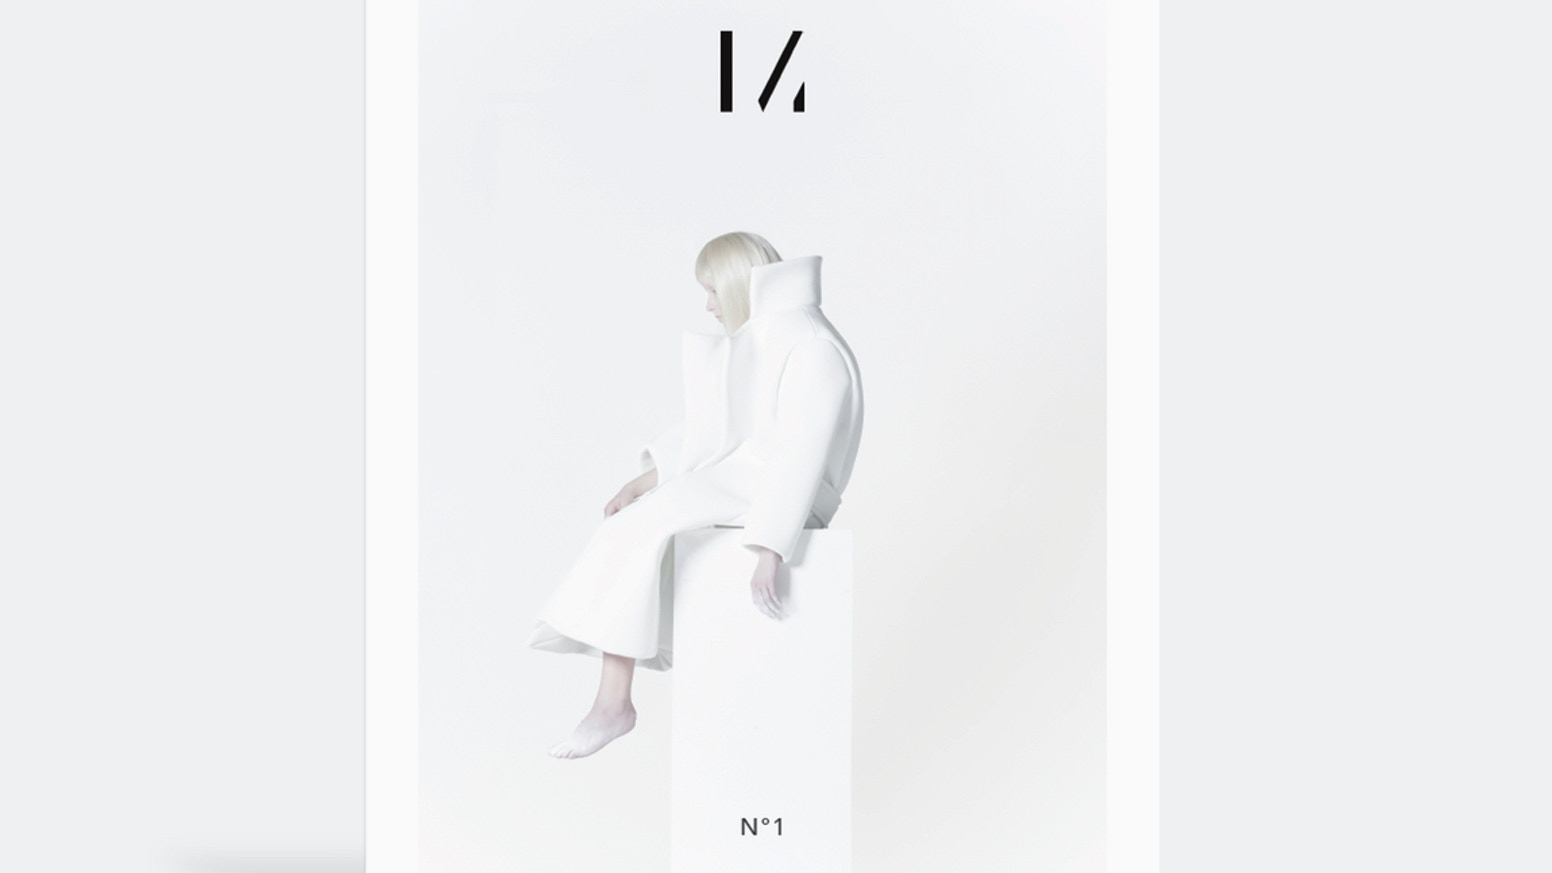 A magazine that celebrates the best of minimalism in design. Issue Nº1